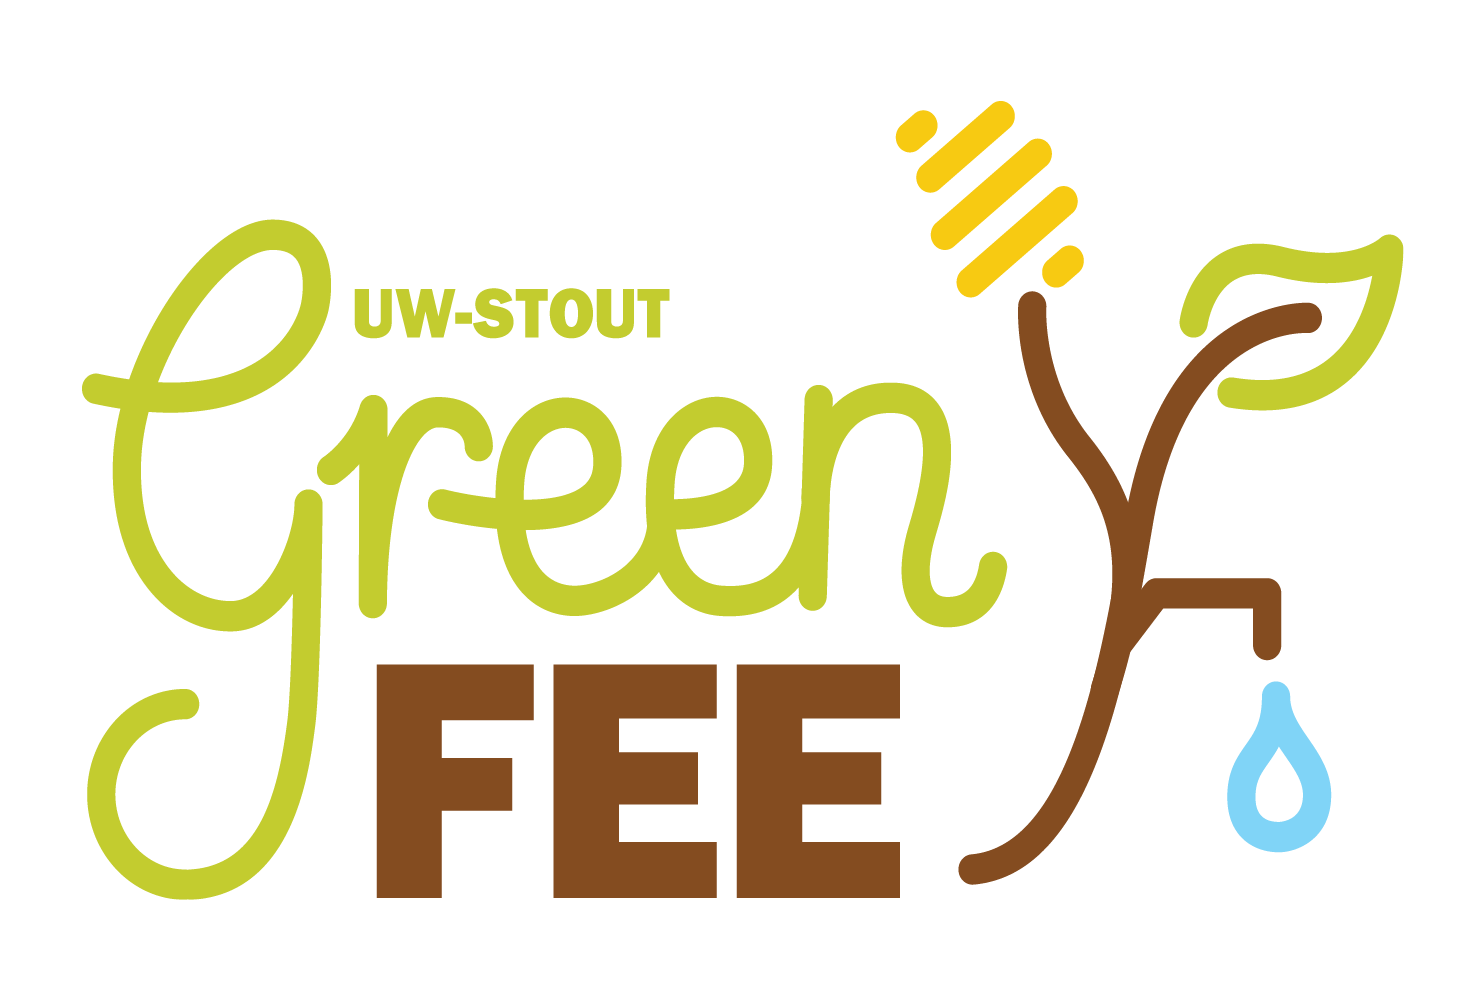 Green Fee Mark